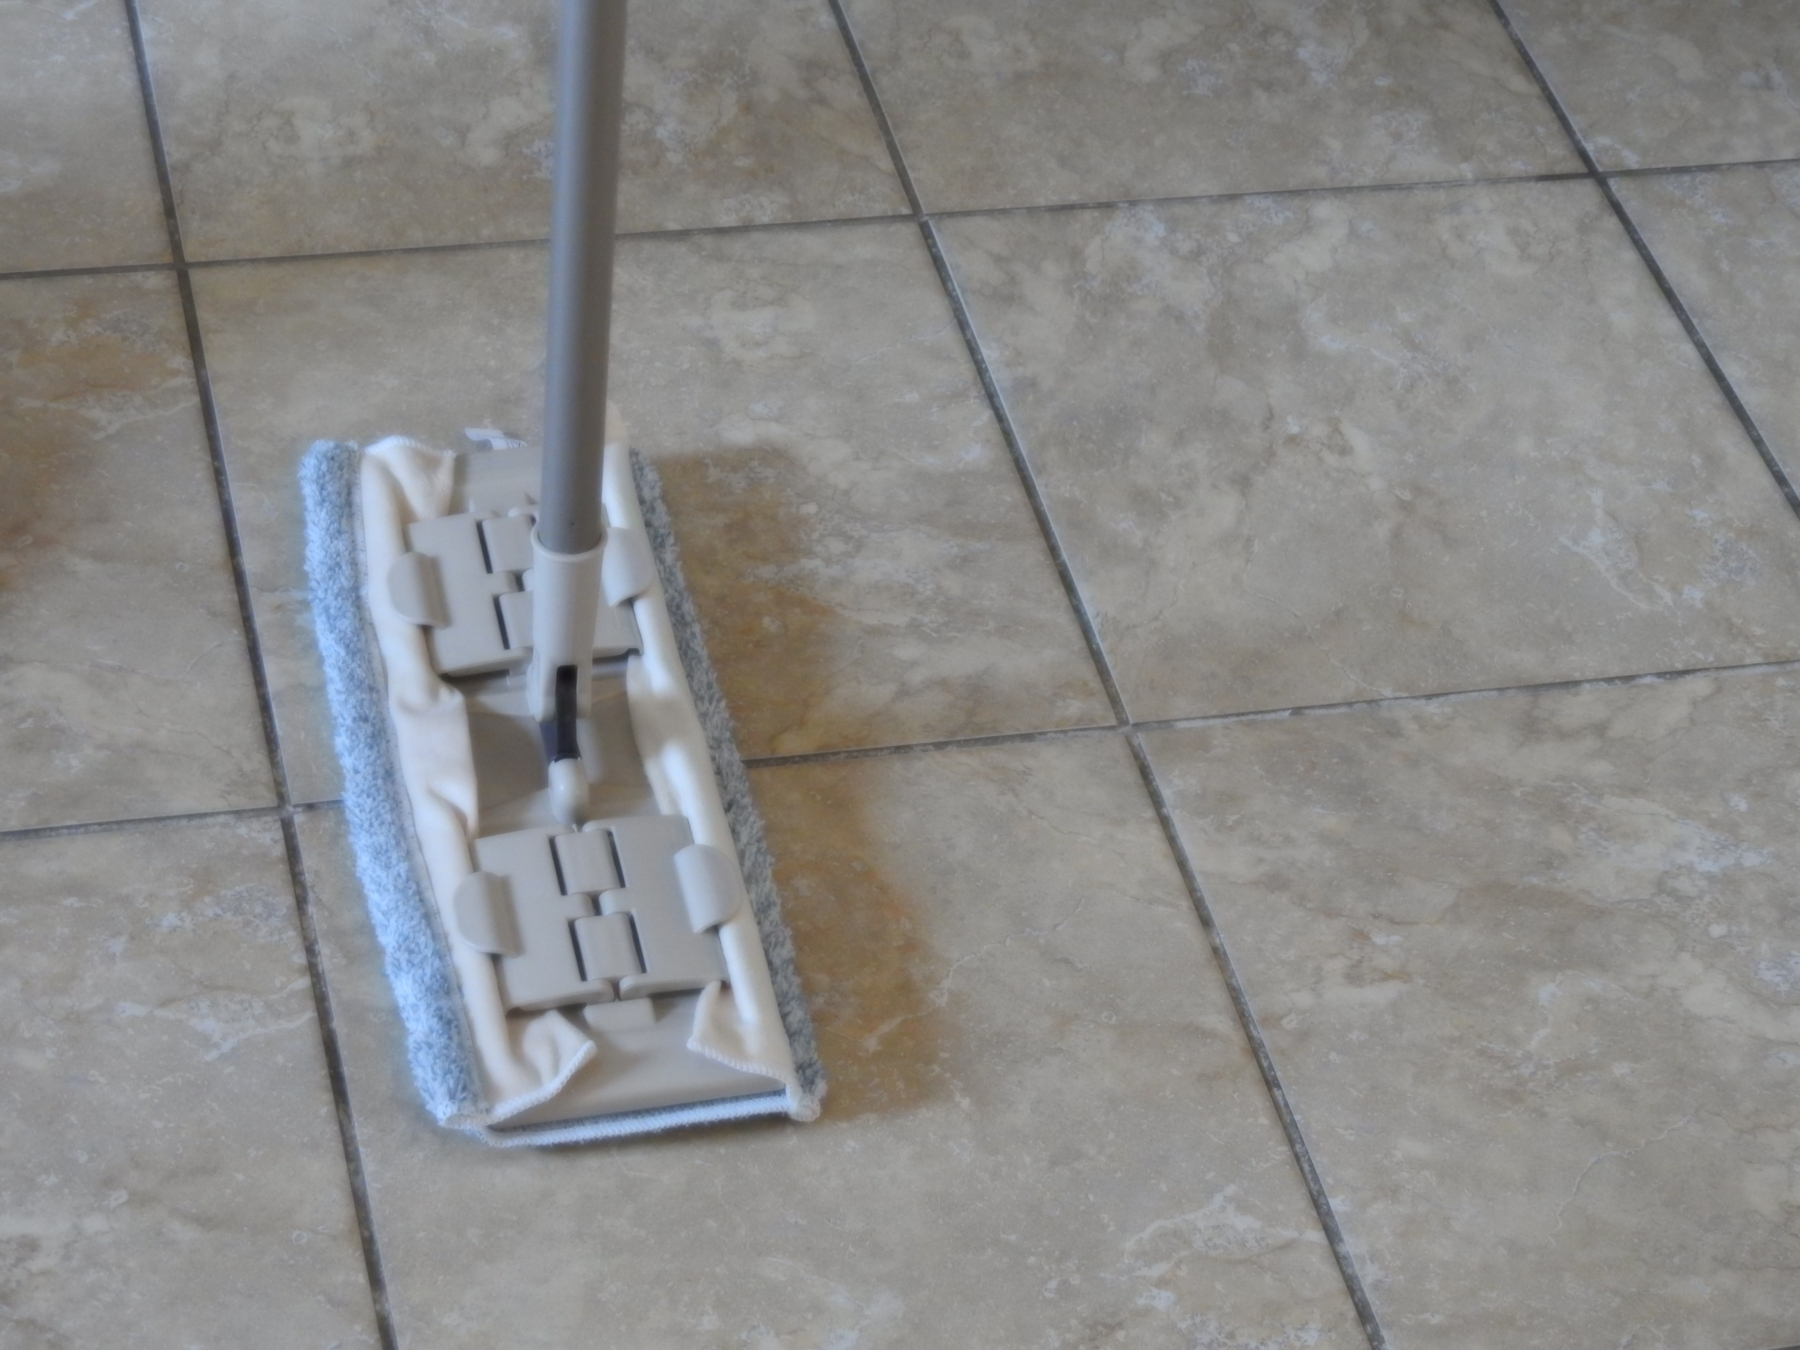 Best Wet Dry Mop Ever